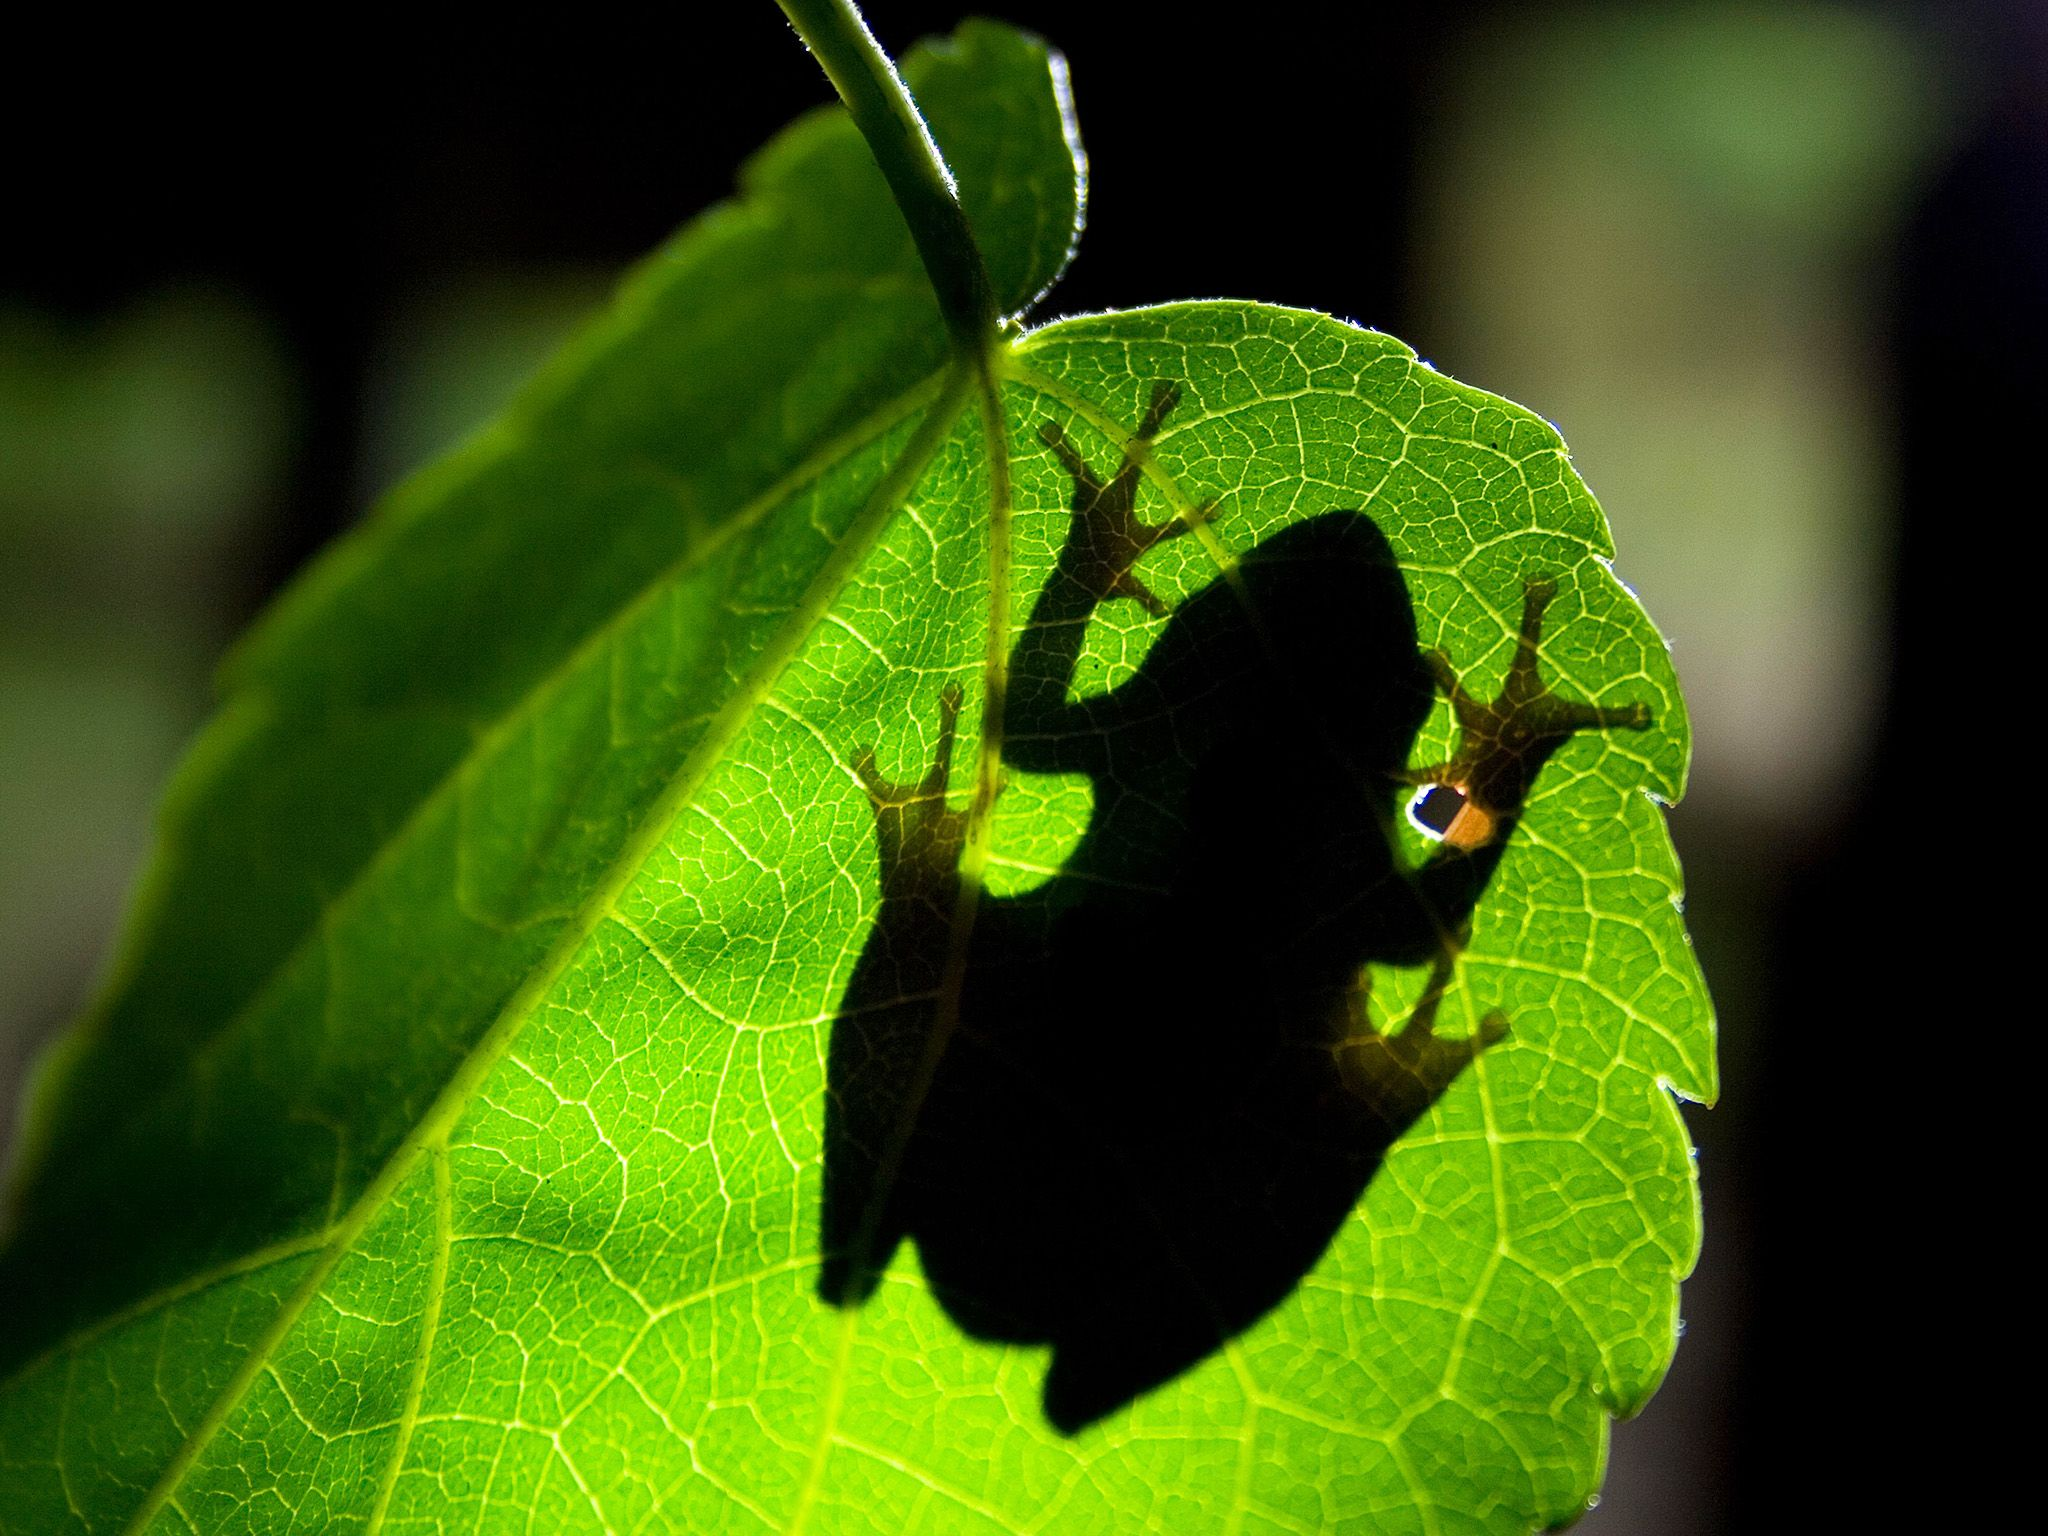 Underside shot looking up through leaf to silhouette of tree frog. Tree frogs distinctive... [Photo of the day - می 2015]